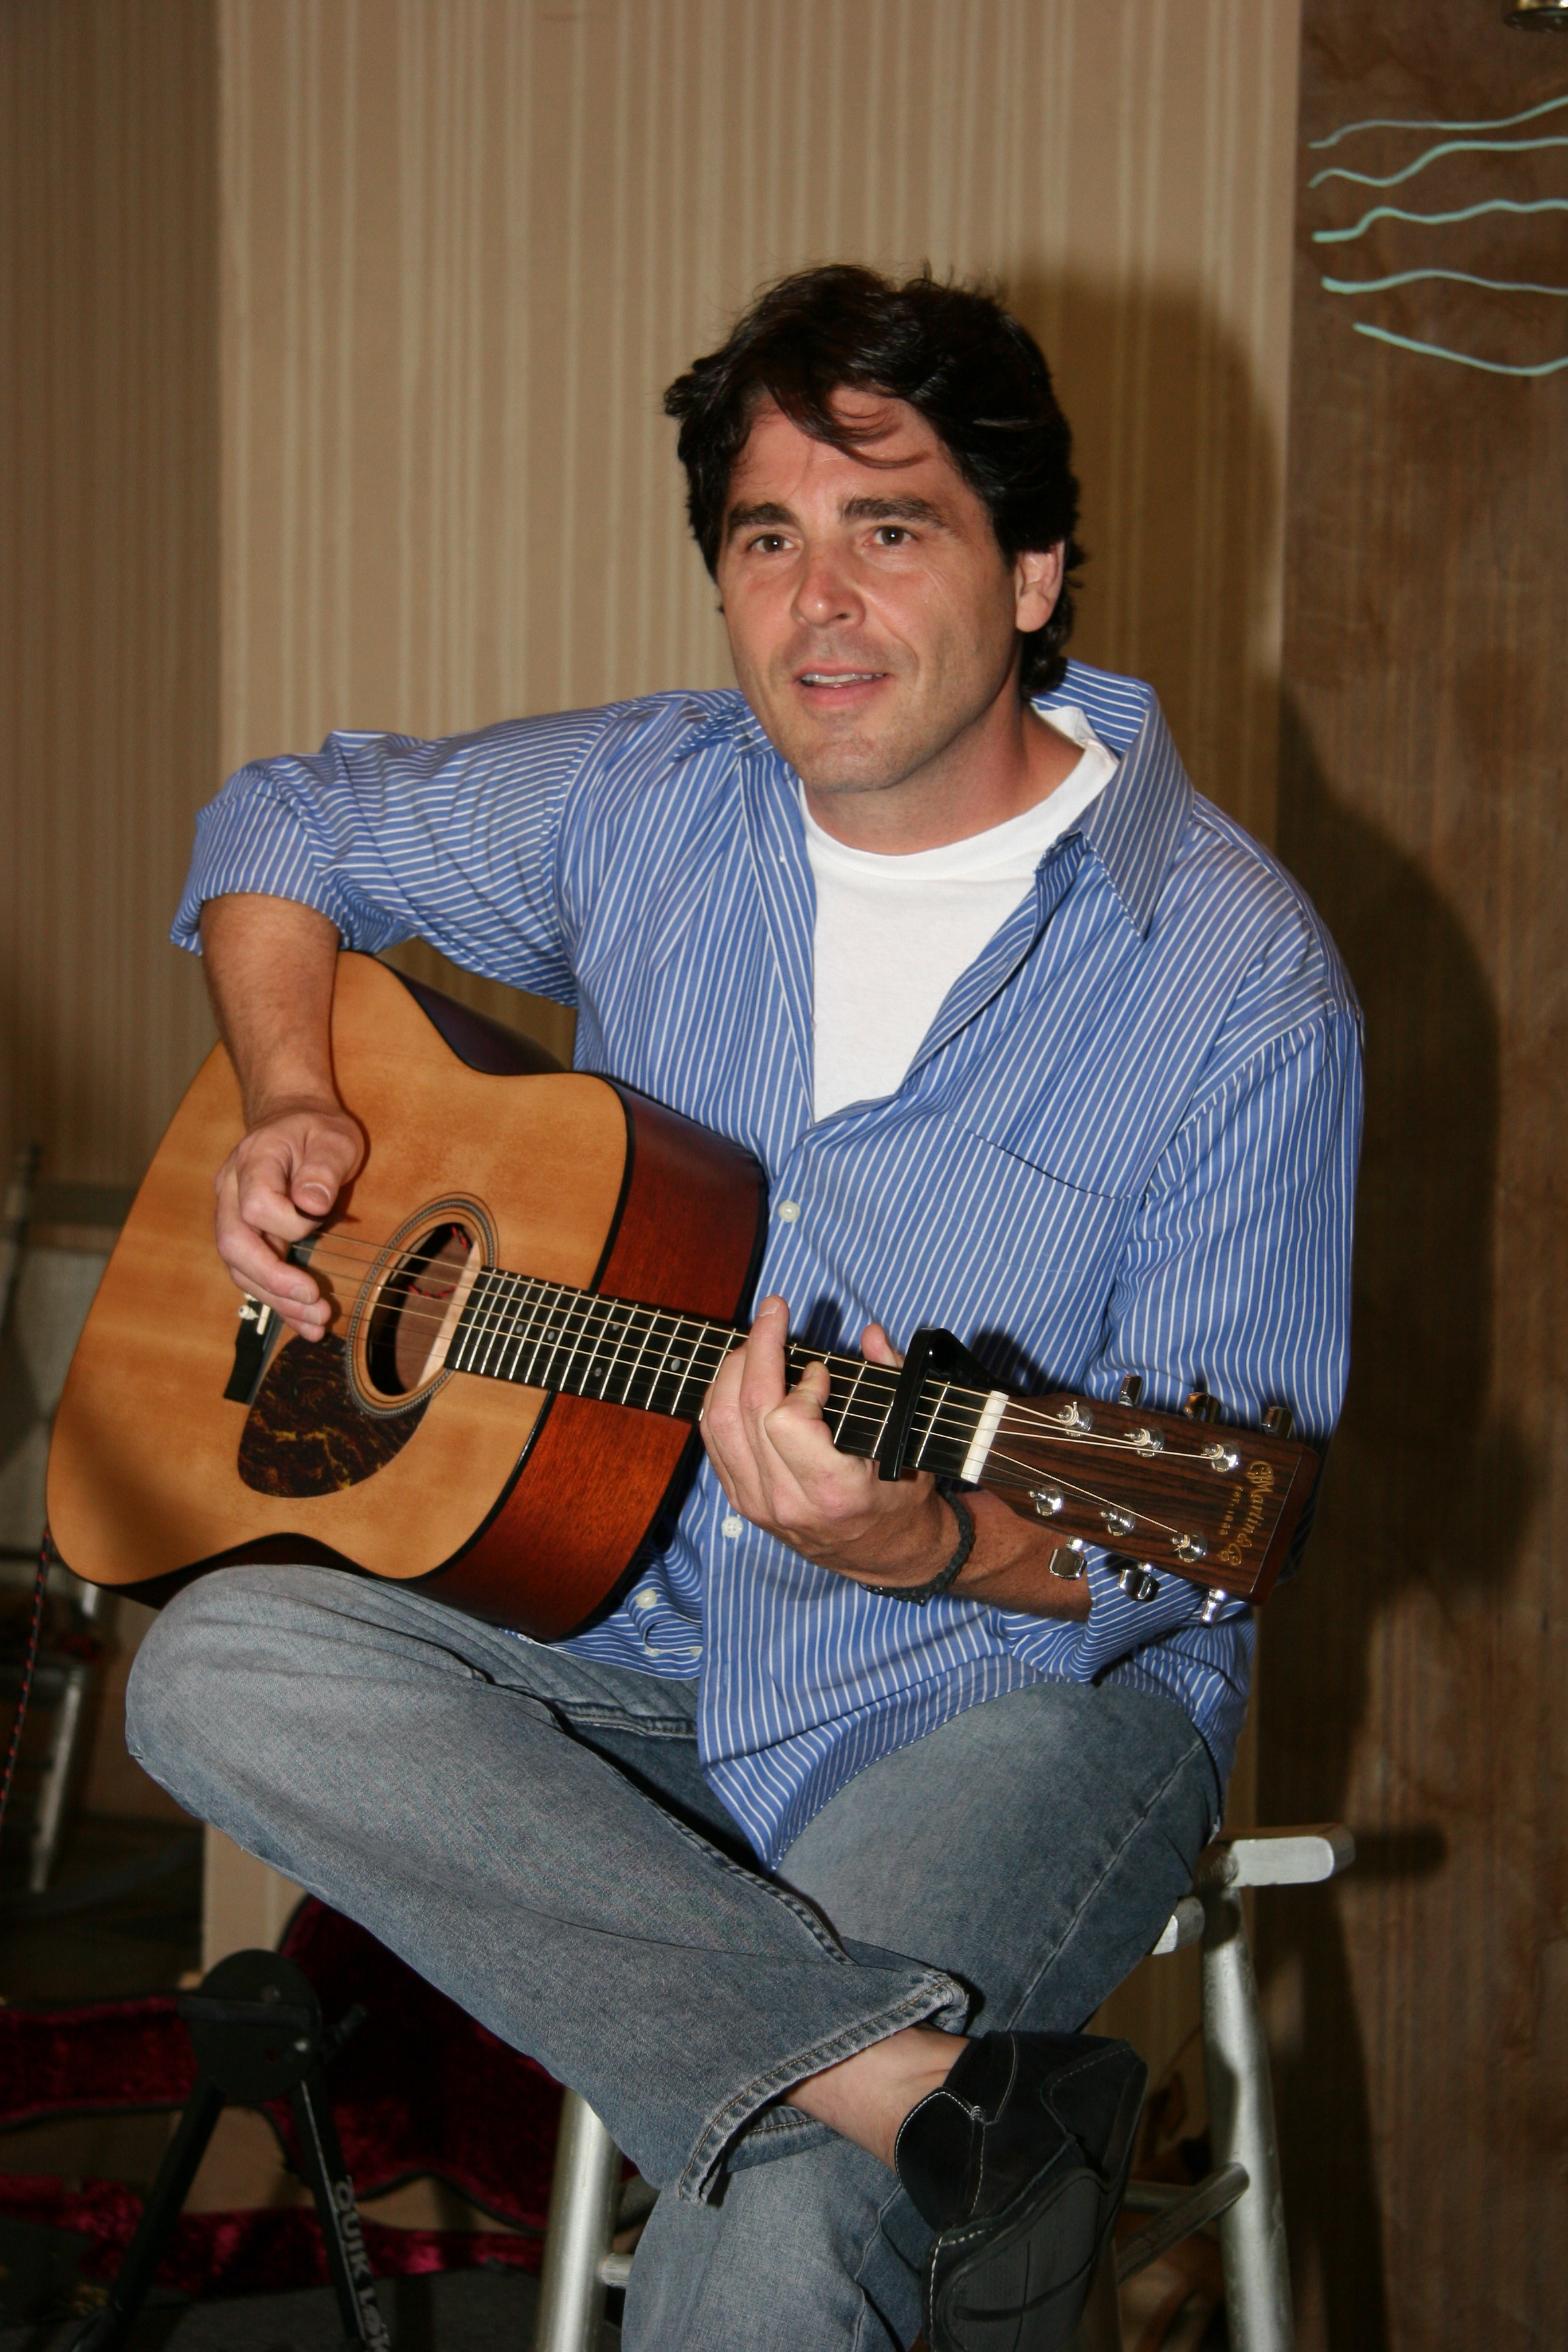 BMI lobby for Songs of Love event - Nashville